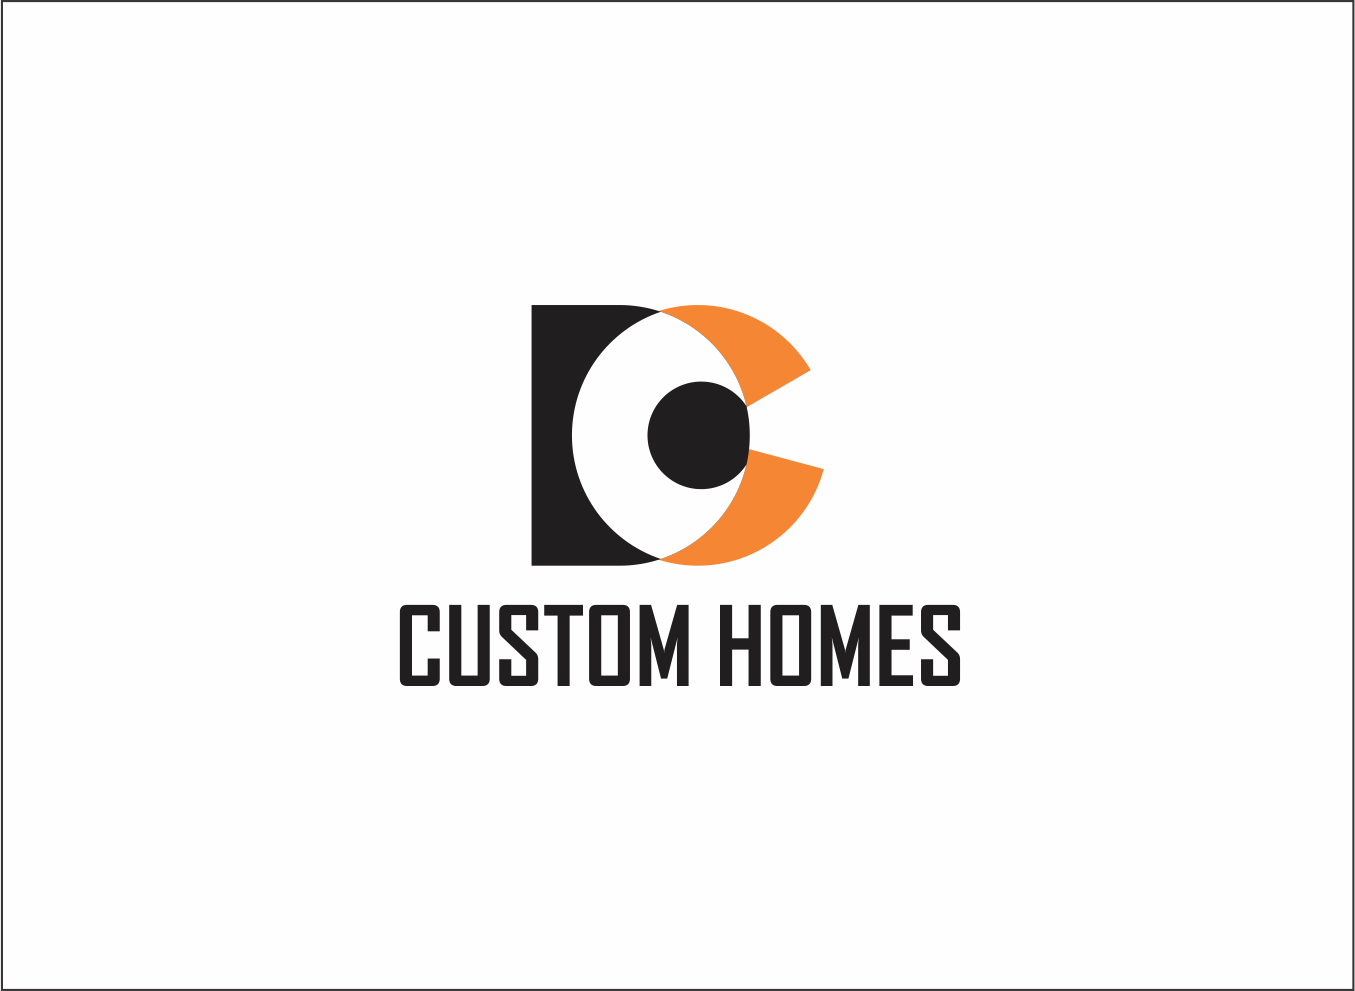 Logo Design by Armada Jamaluddin - Entry No. 87 in the Logo Design Contest Creative Logo Design for DC Custom Homes.